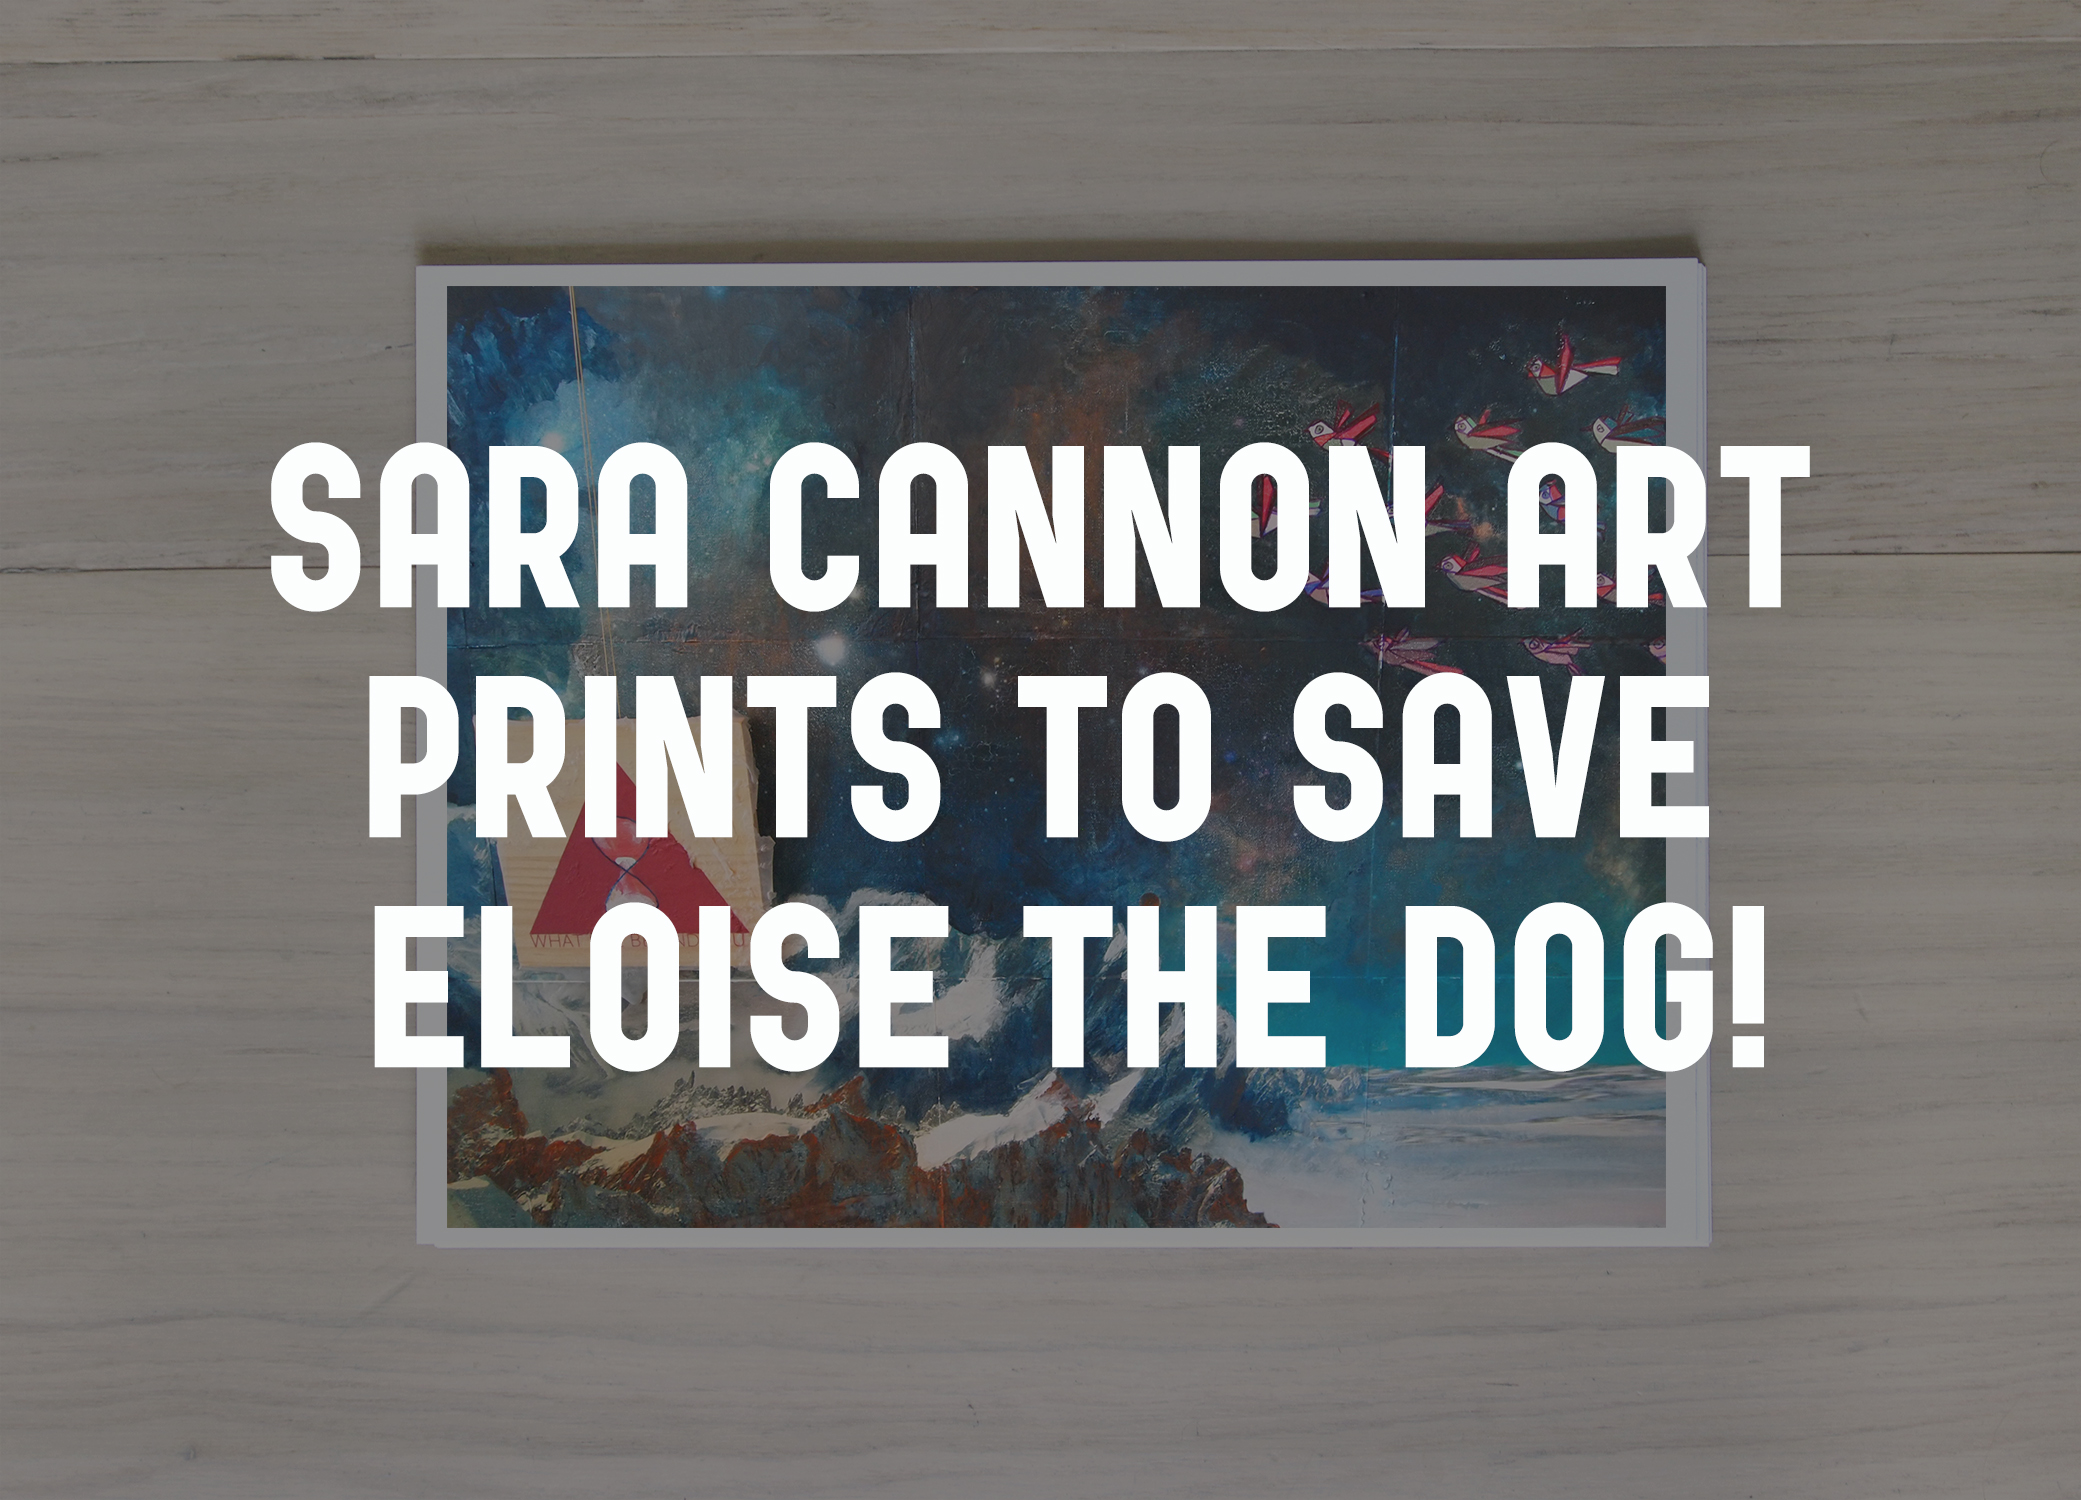 Sara Cannon Art donating procedes form all prints starting this #GivingTuesday